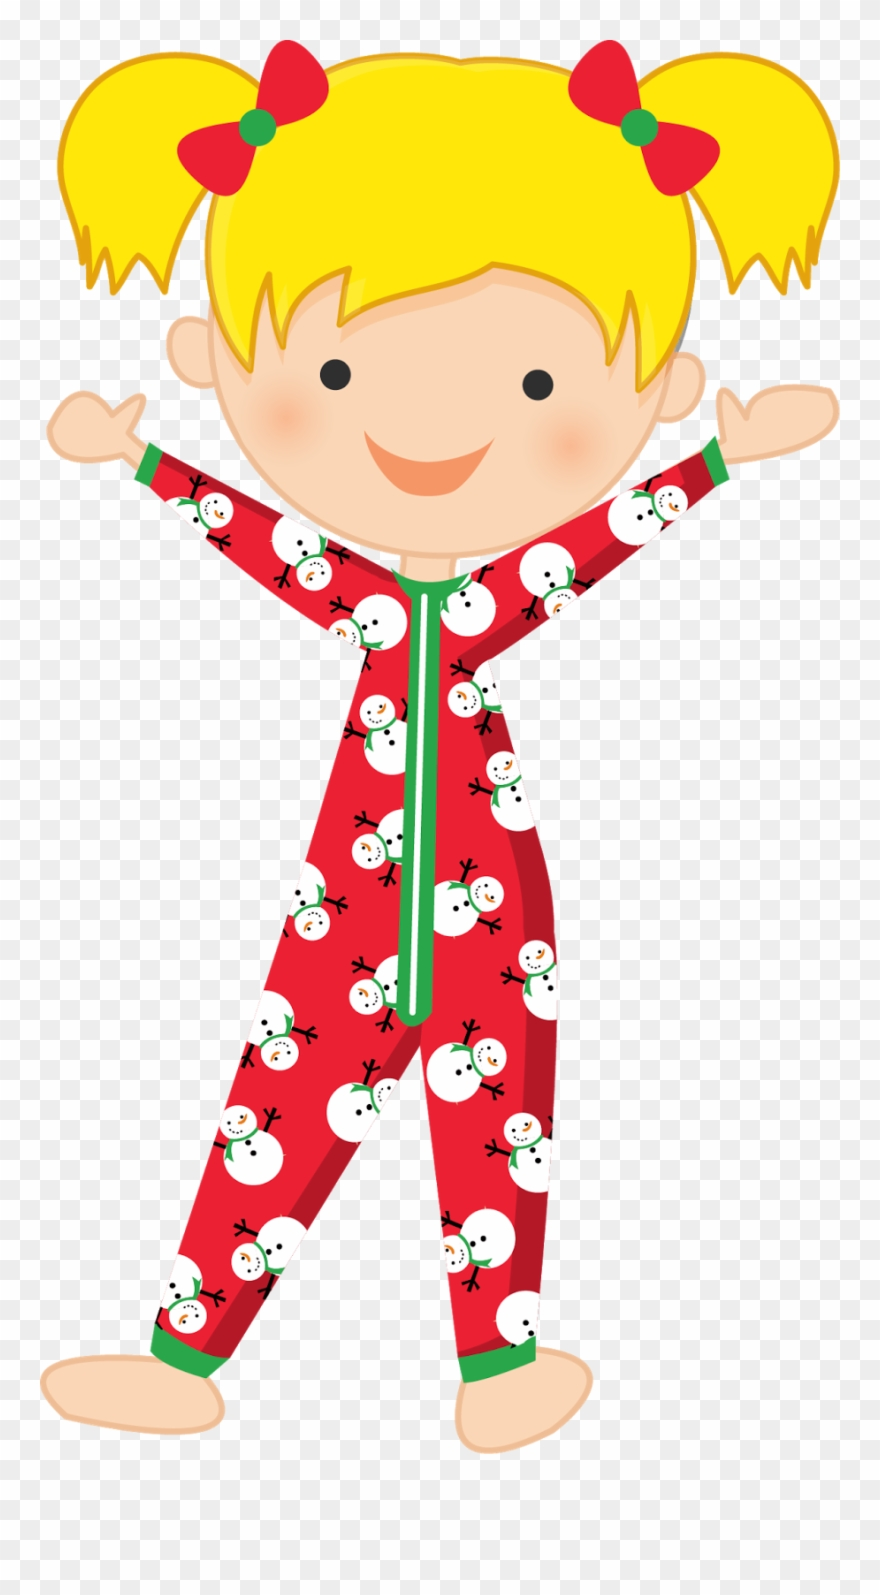 Christma pajama clipart picture library download Christmas Pajamas Clipart - Png Download (#1930442) - PinClipart picture library download